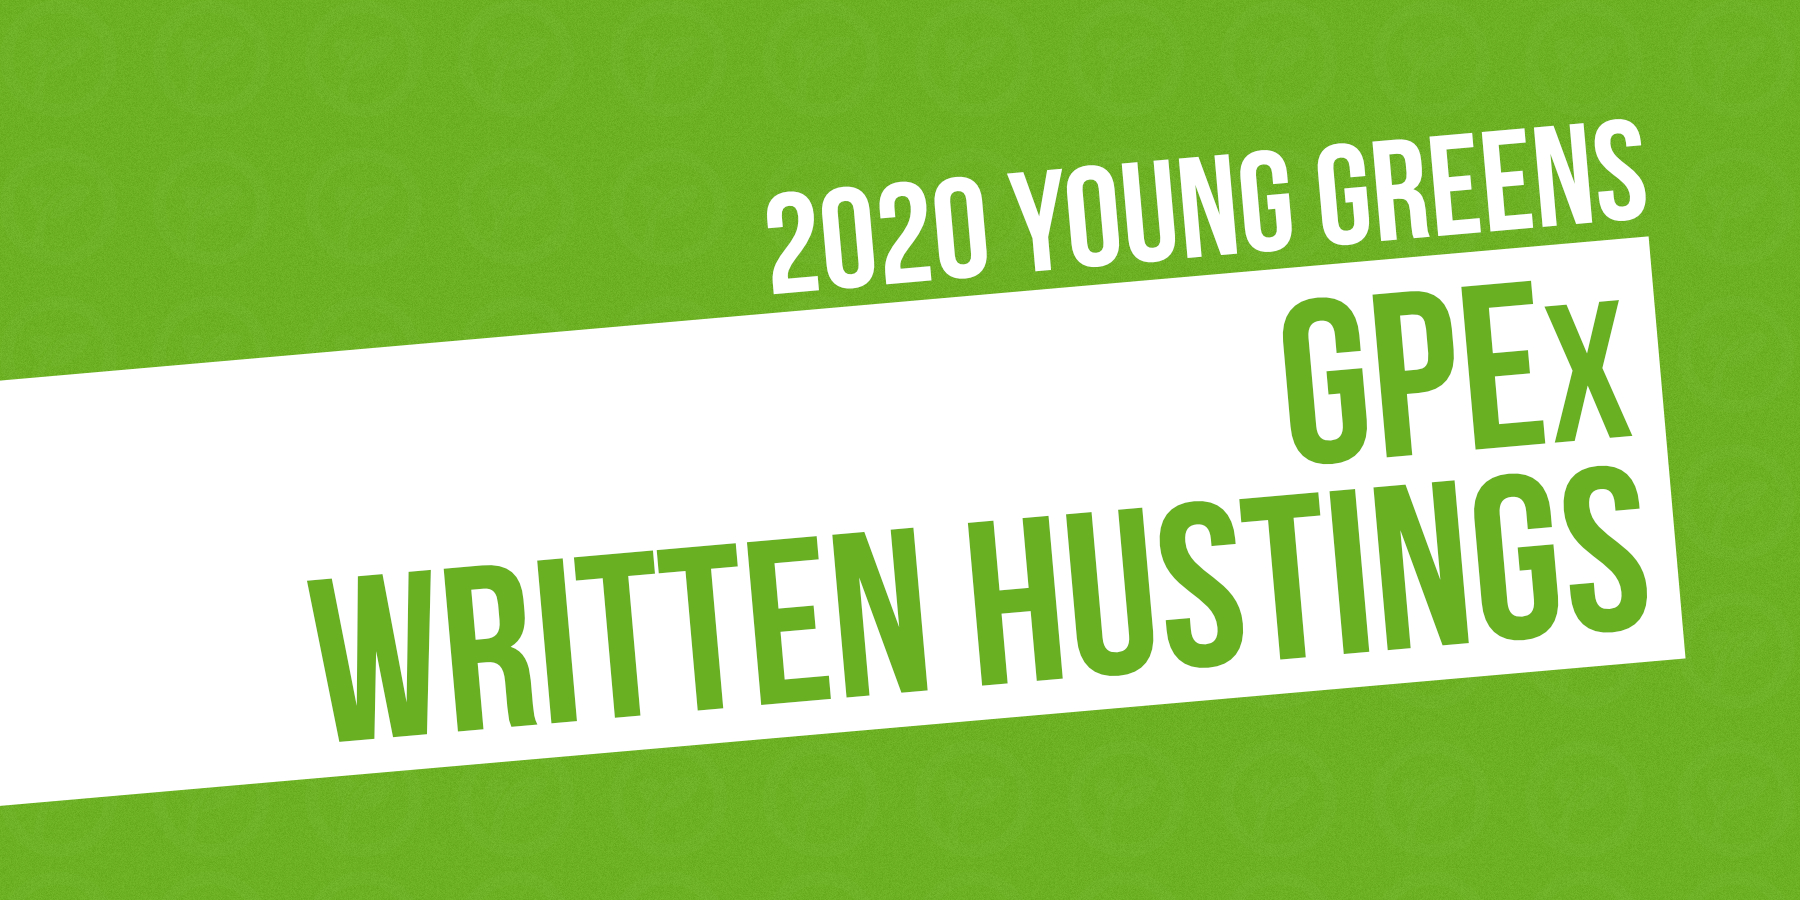 GRAPHIC: 2020 Young Greens Written Hustings